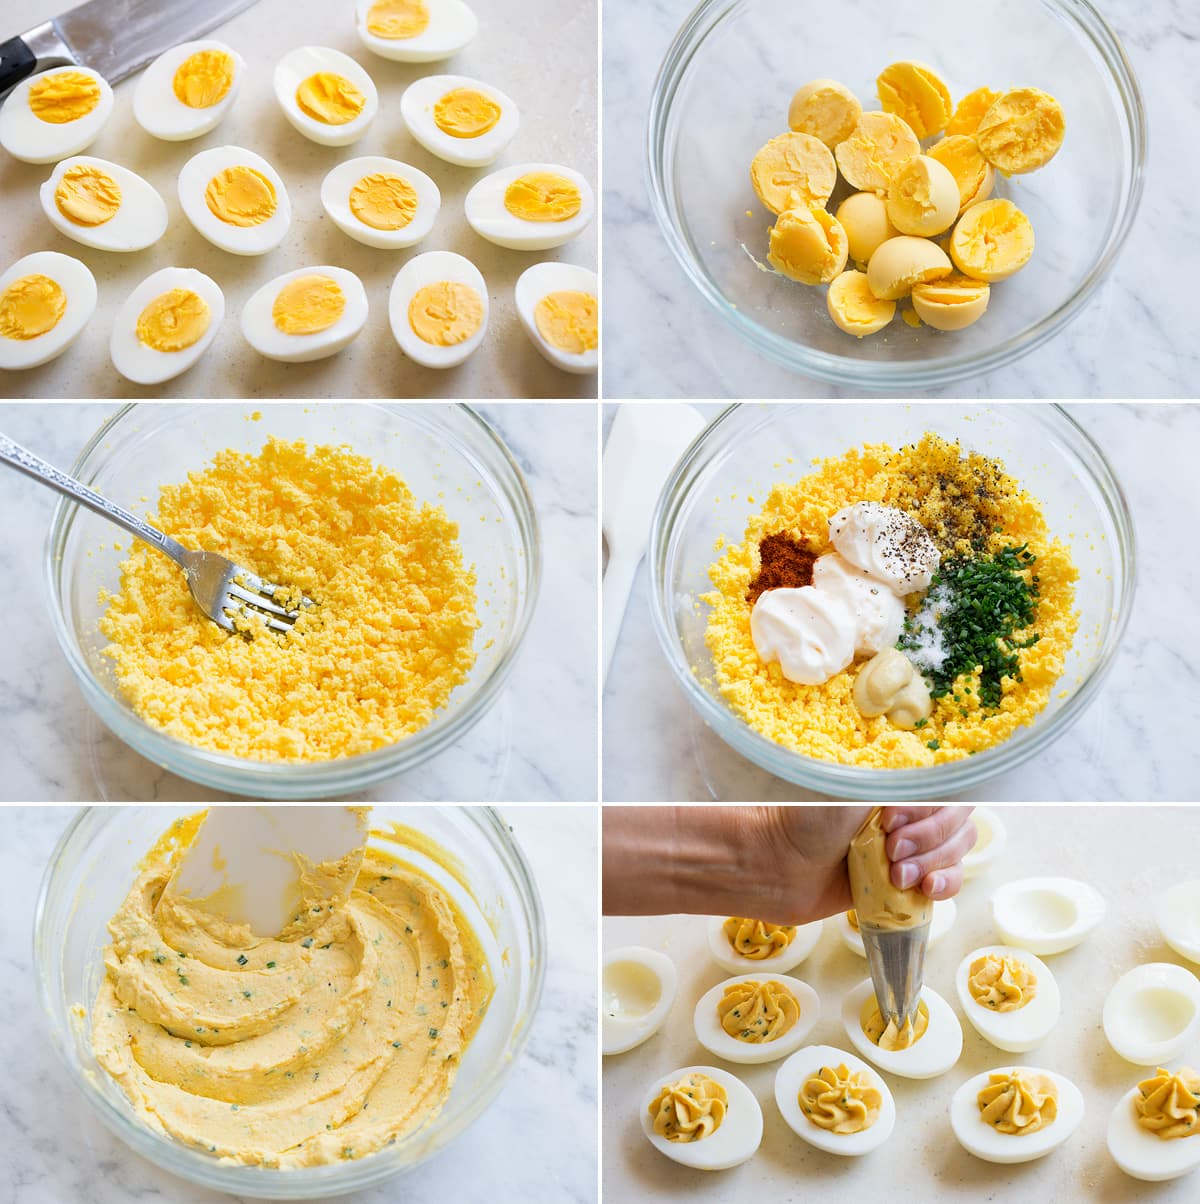 Image showing six steps of preparing deviled eggs including halving boiled eggs, removing yolks into a bowl, mashing yolks, adding mayonnaise and seasonings, mixing to combined then piping filling into egg whites.